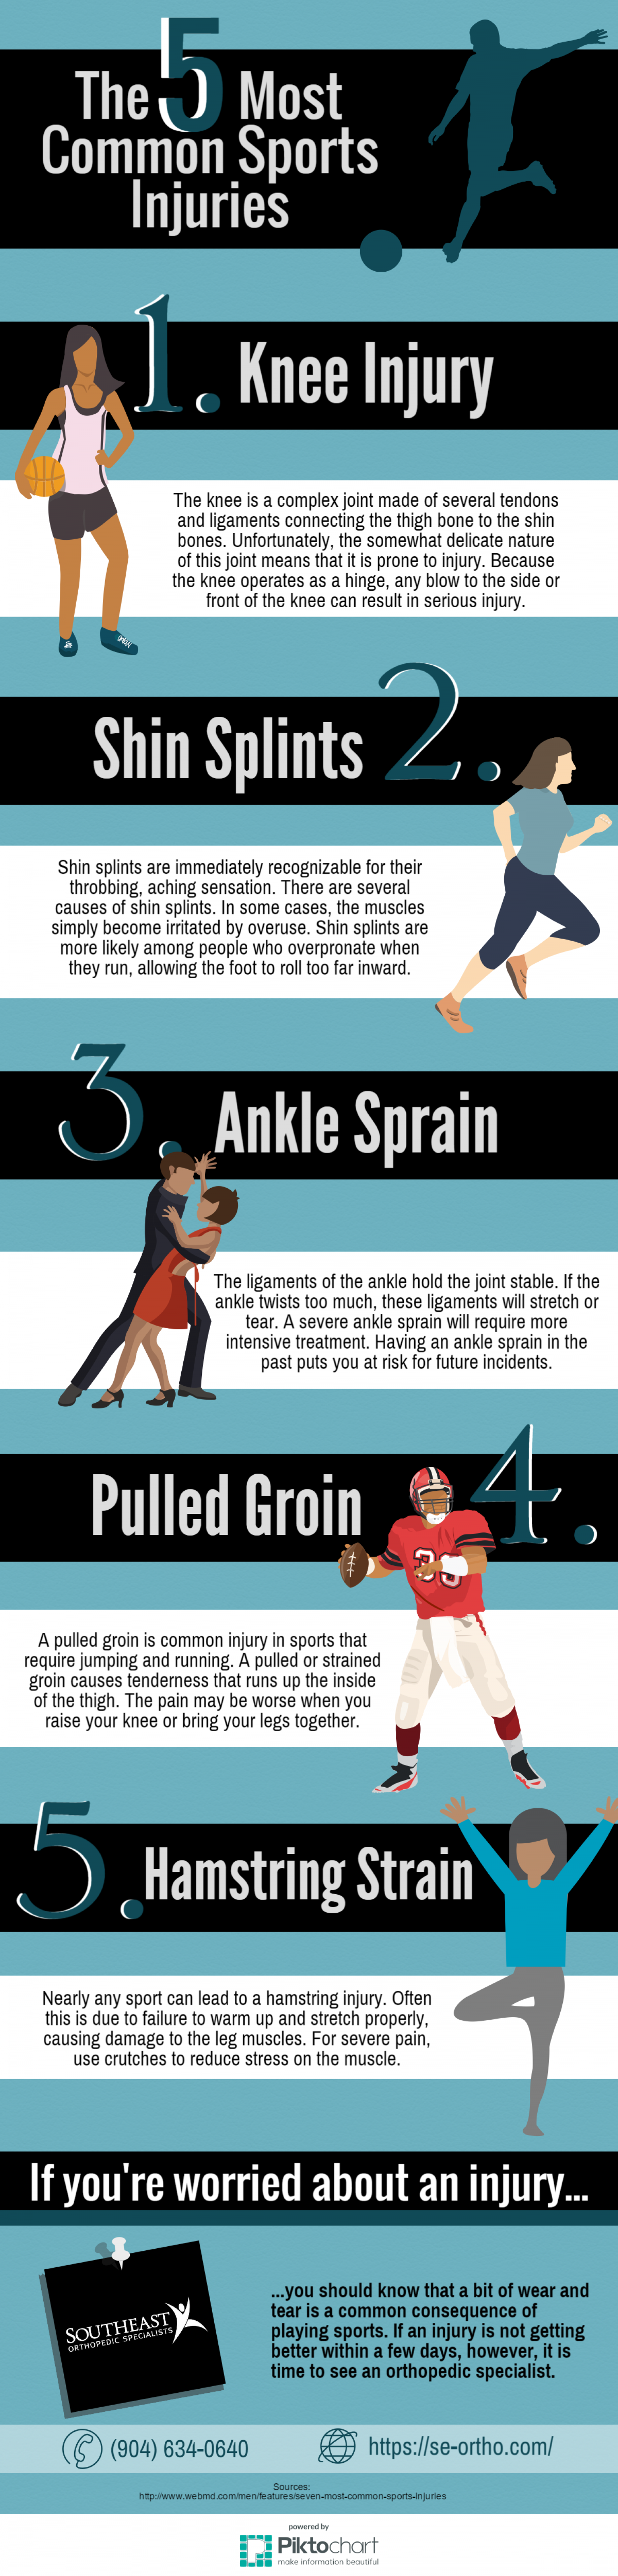 The Five Most Common Sports Injuries Infographic